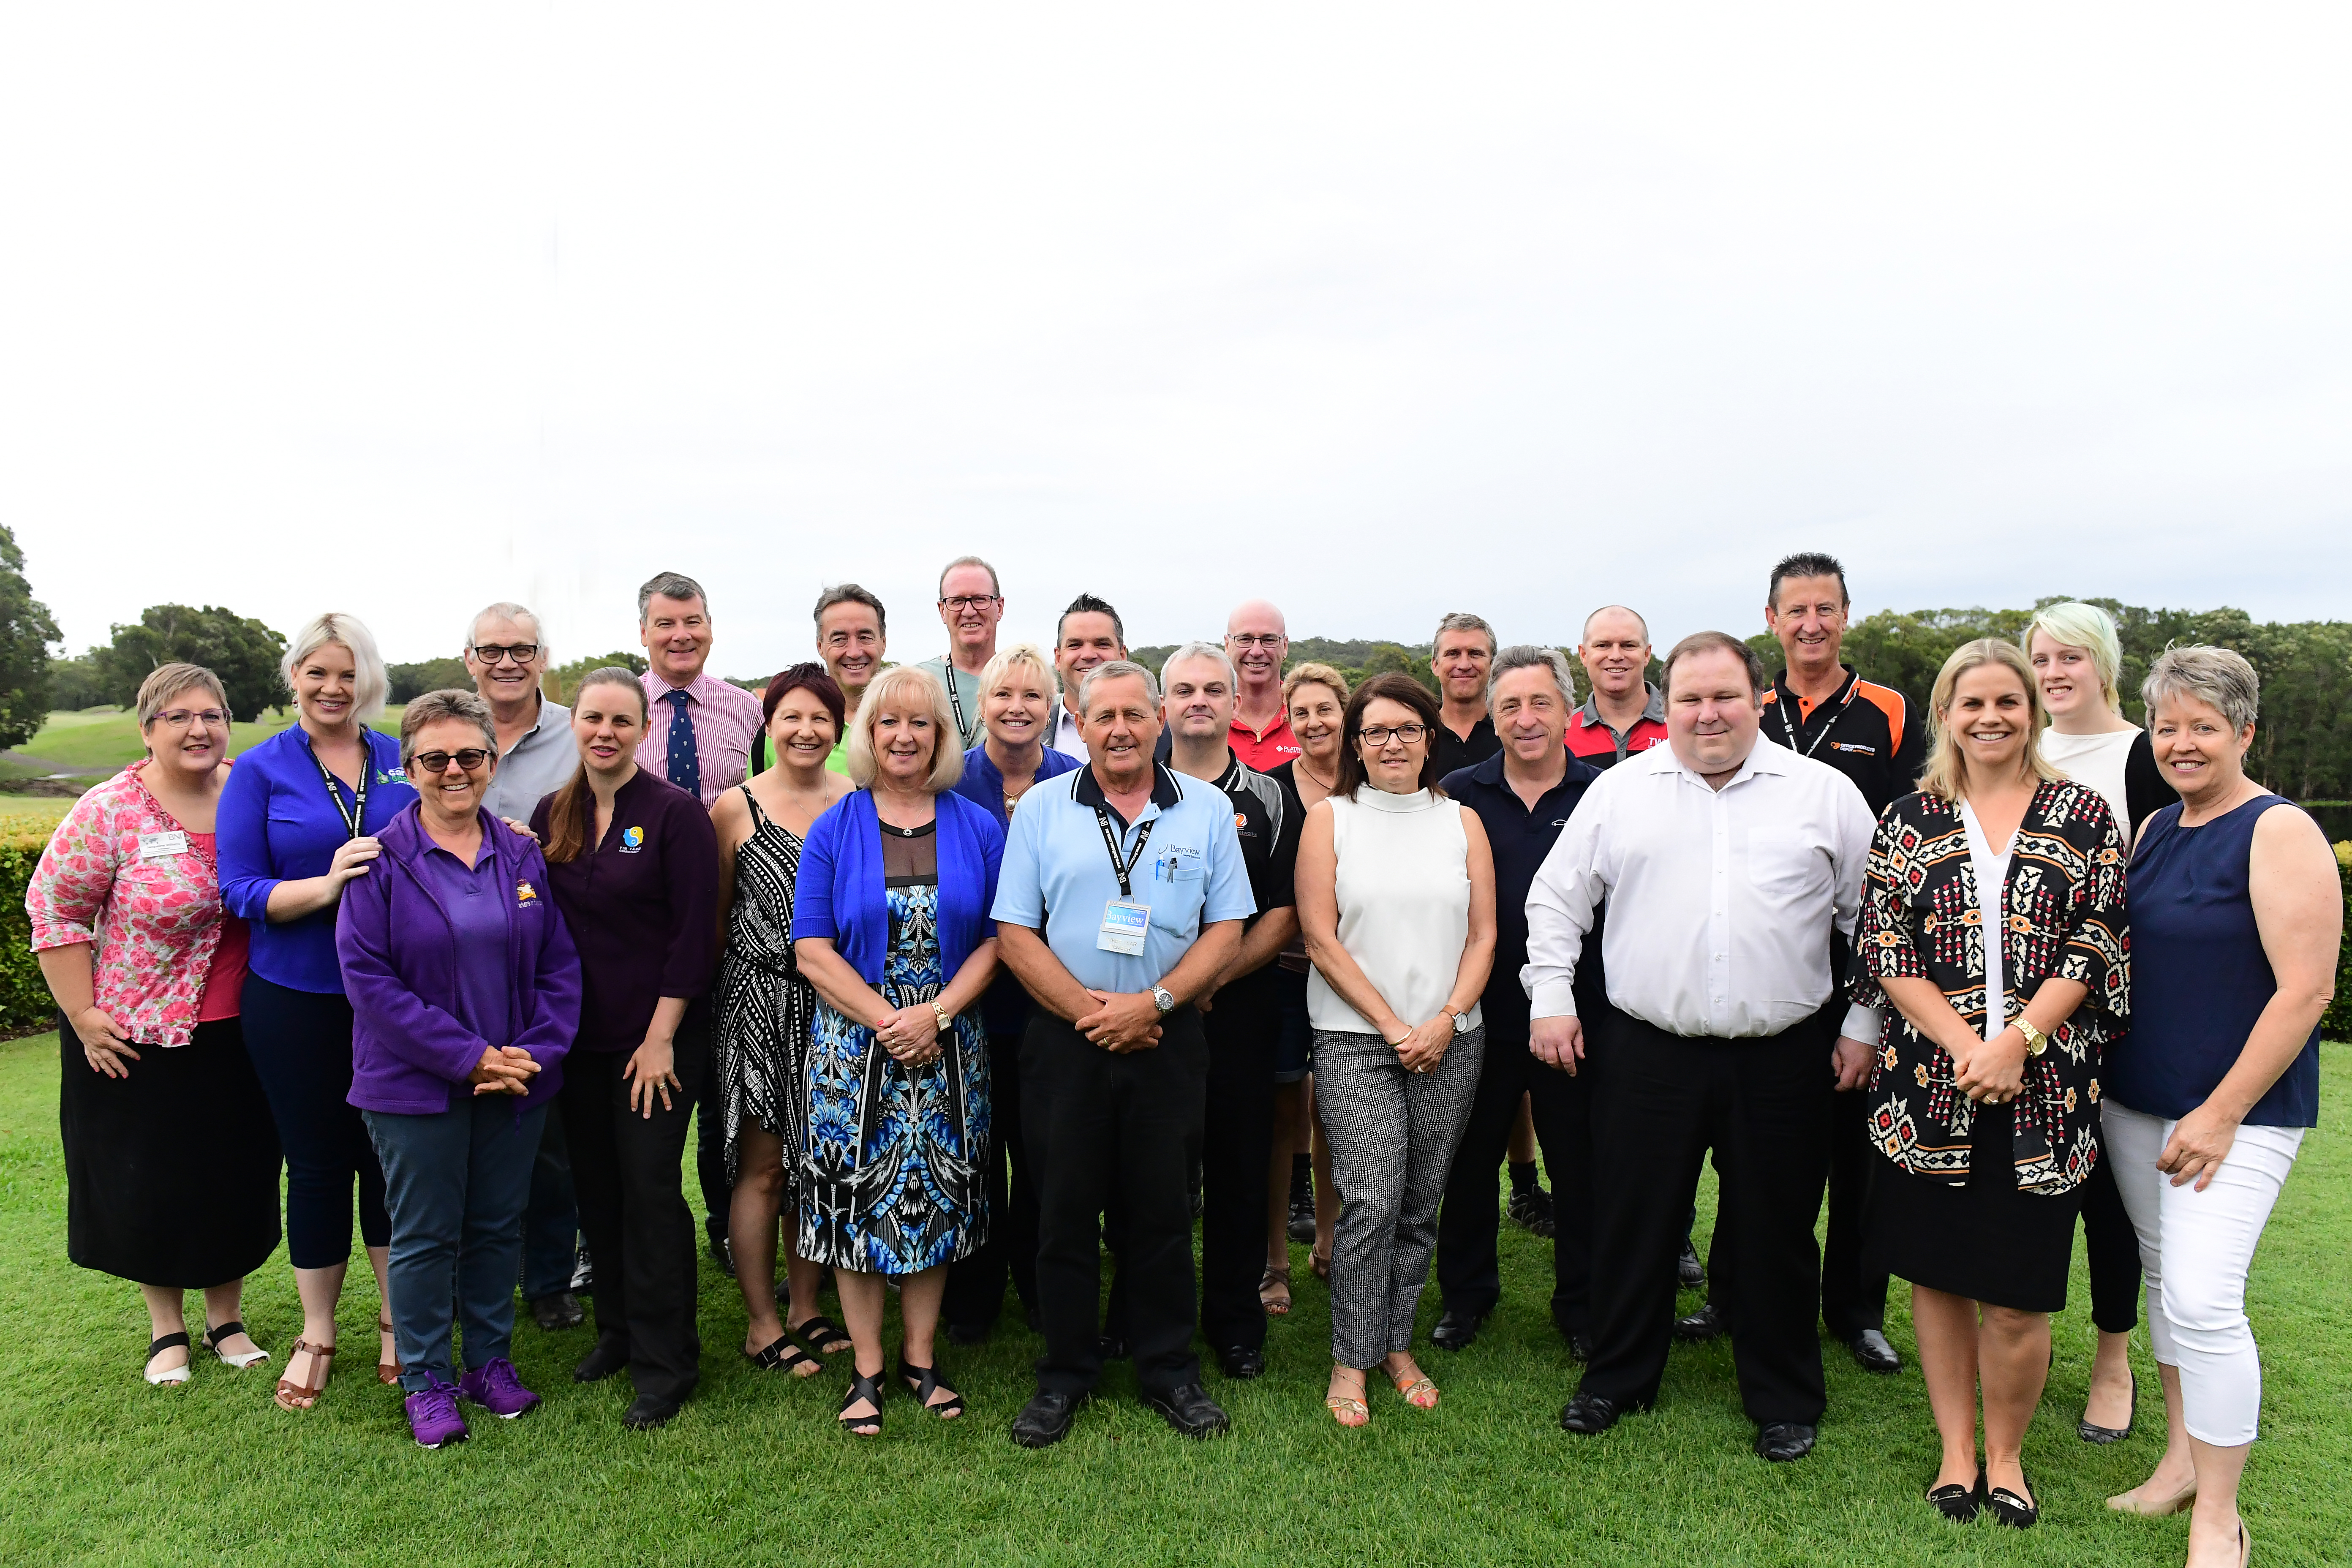 BNI HORIZONS Port Stephens business owners gather on the lawn after Tuesday's breakfast. Photo by Geoff Clark at Capture Imaging